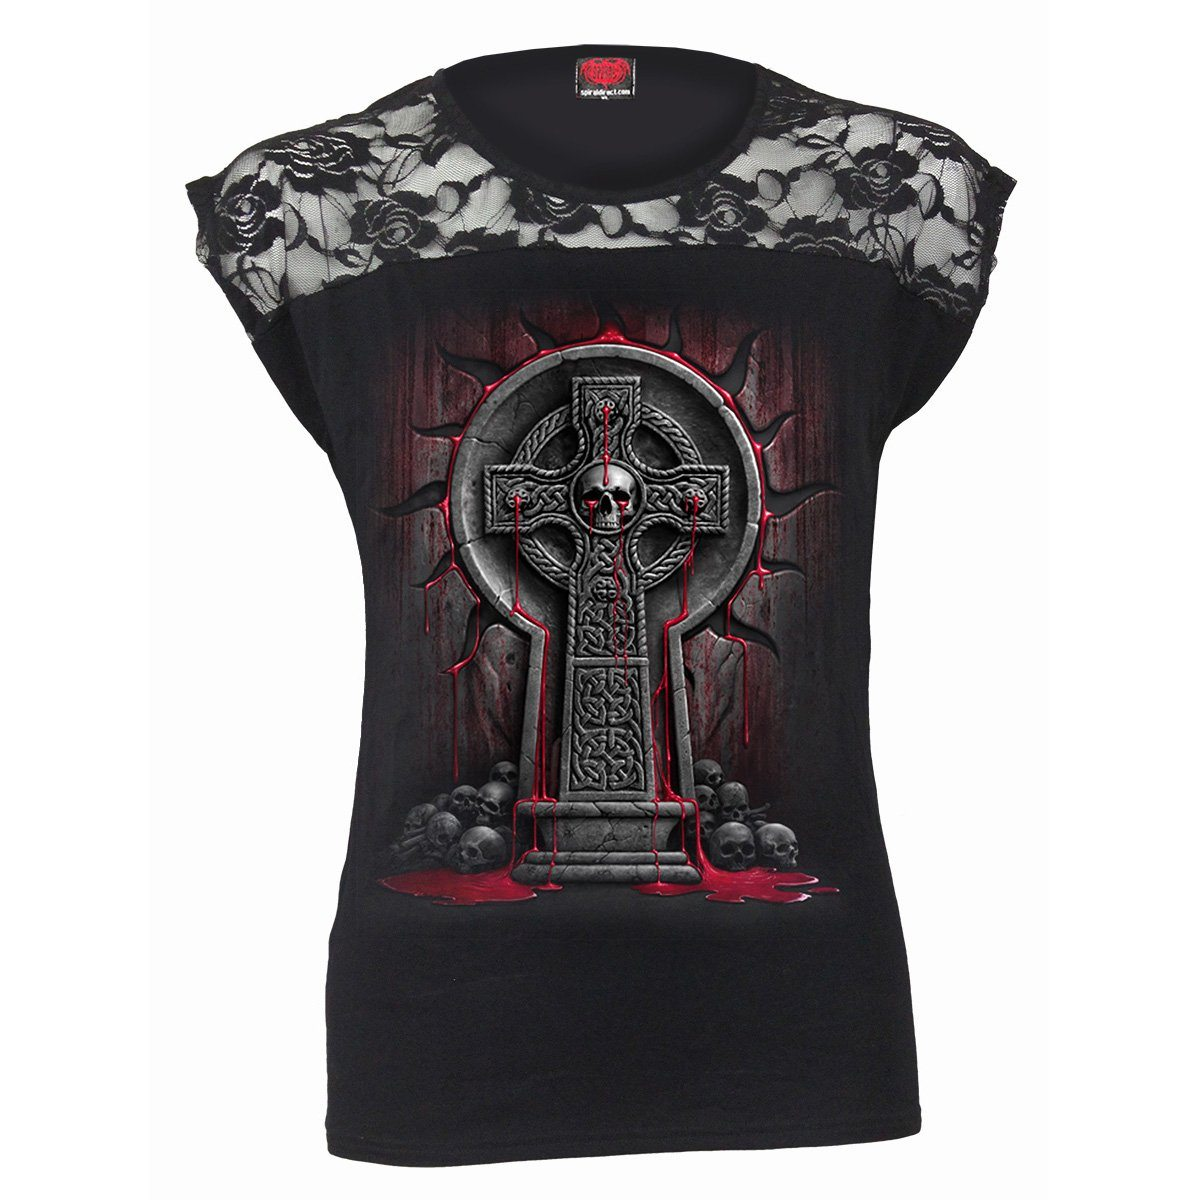 Cursed Tombstone Women's Lace Layered Black Top - Rebels Depot